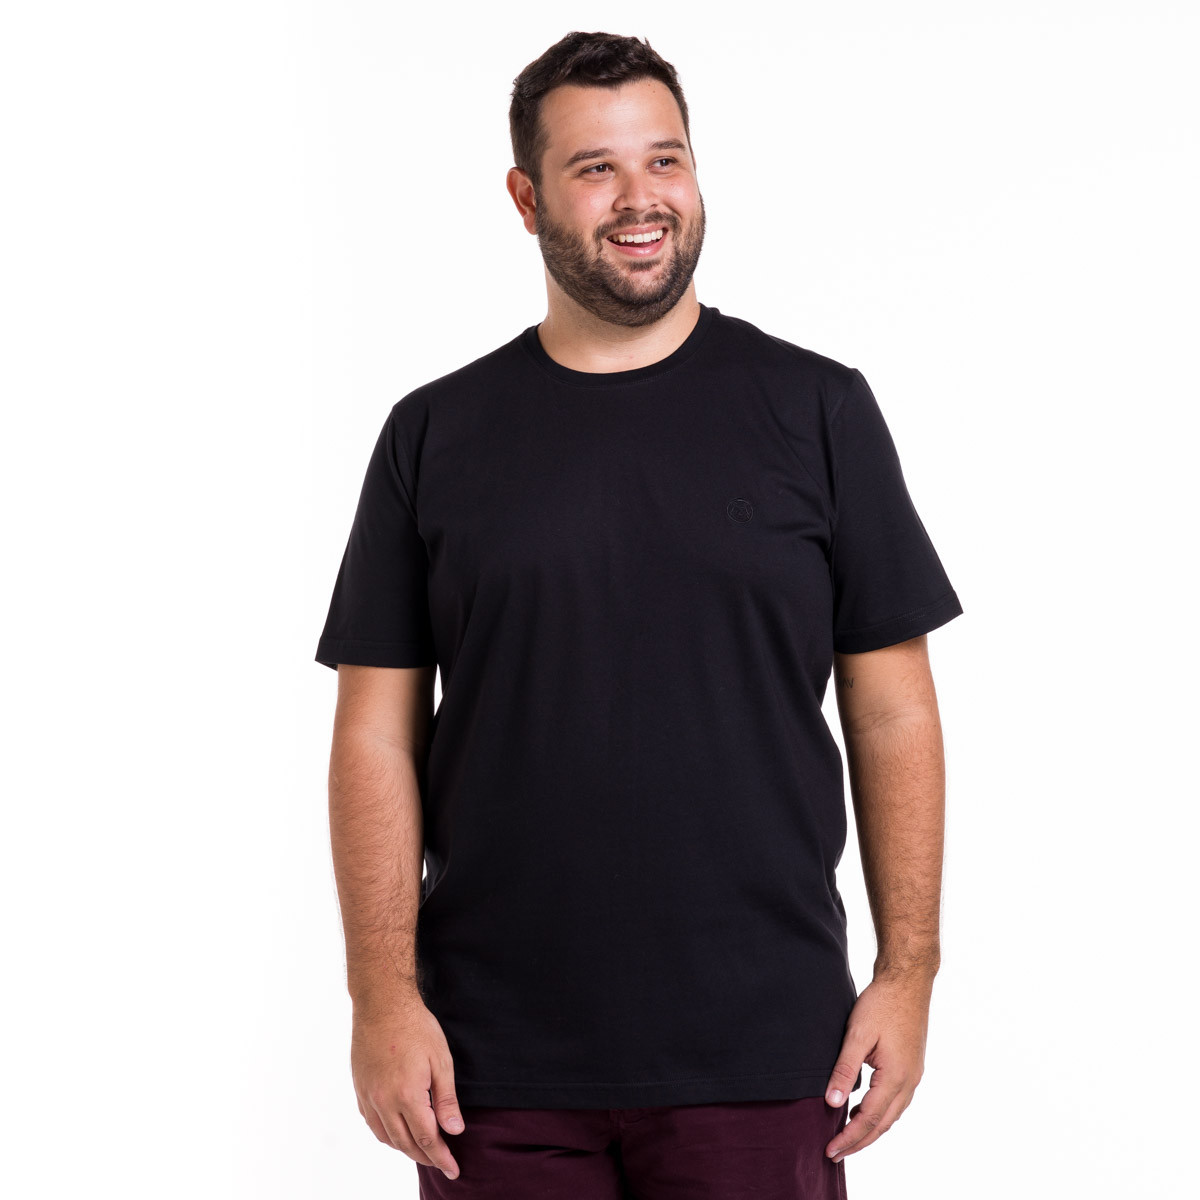 Camiseta Plus Size Masculina Lisa com Bordado